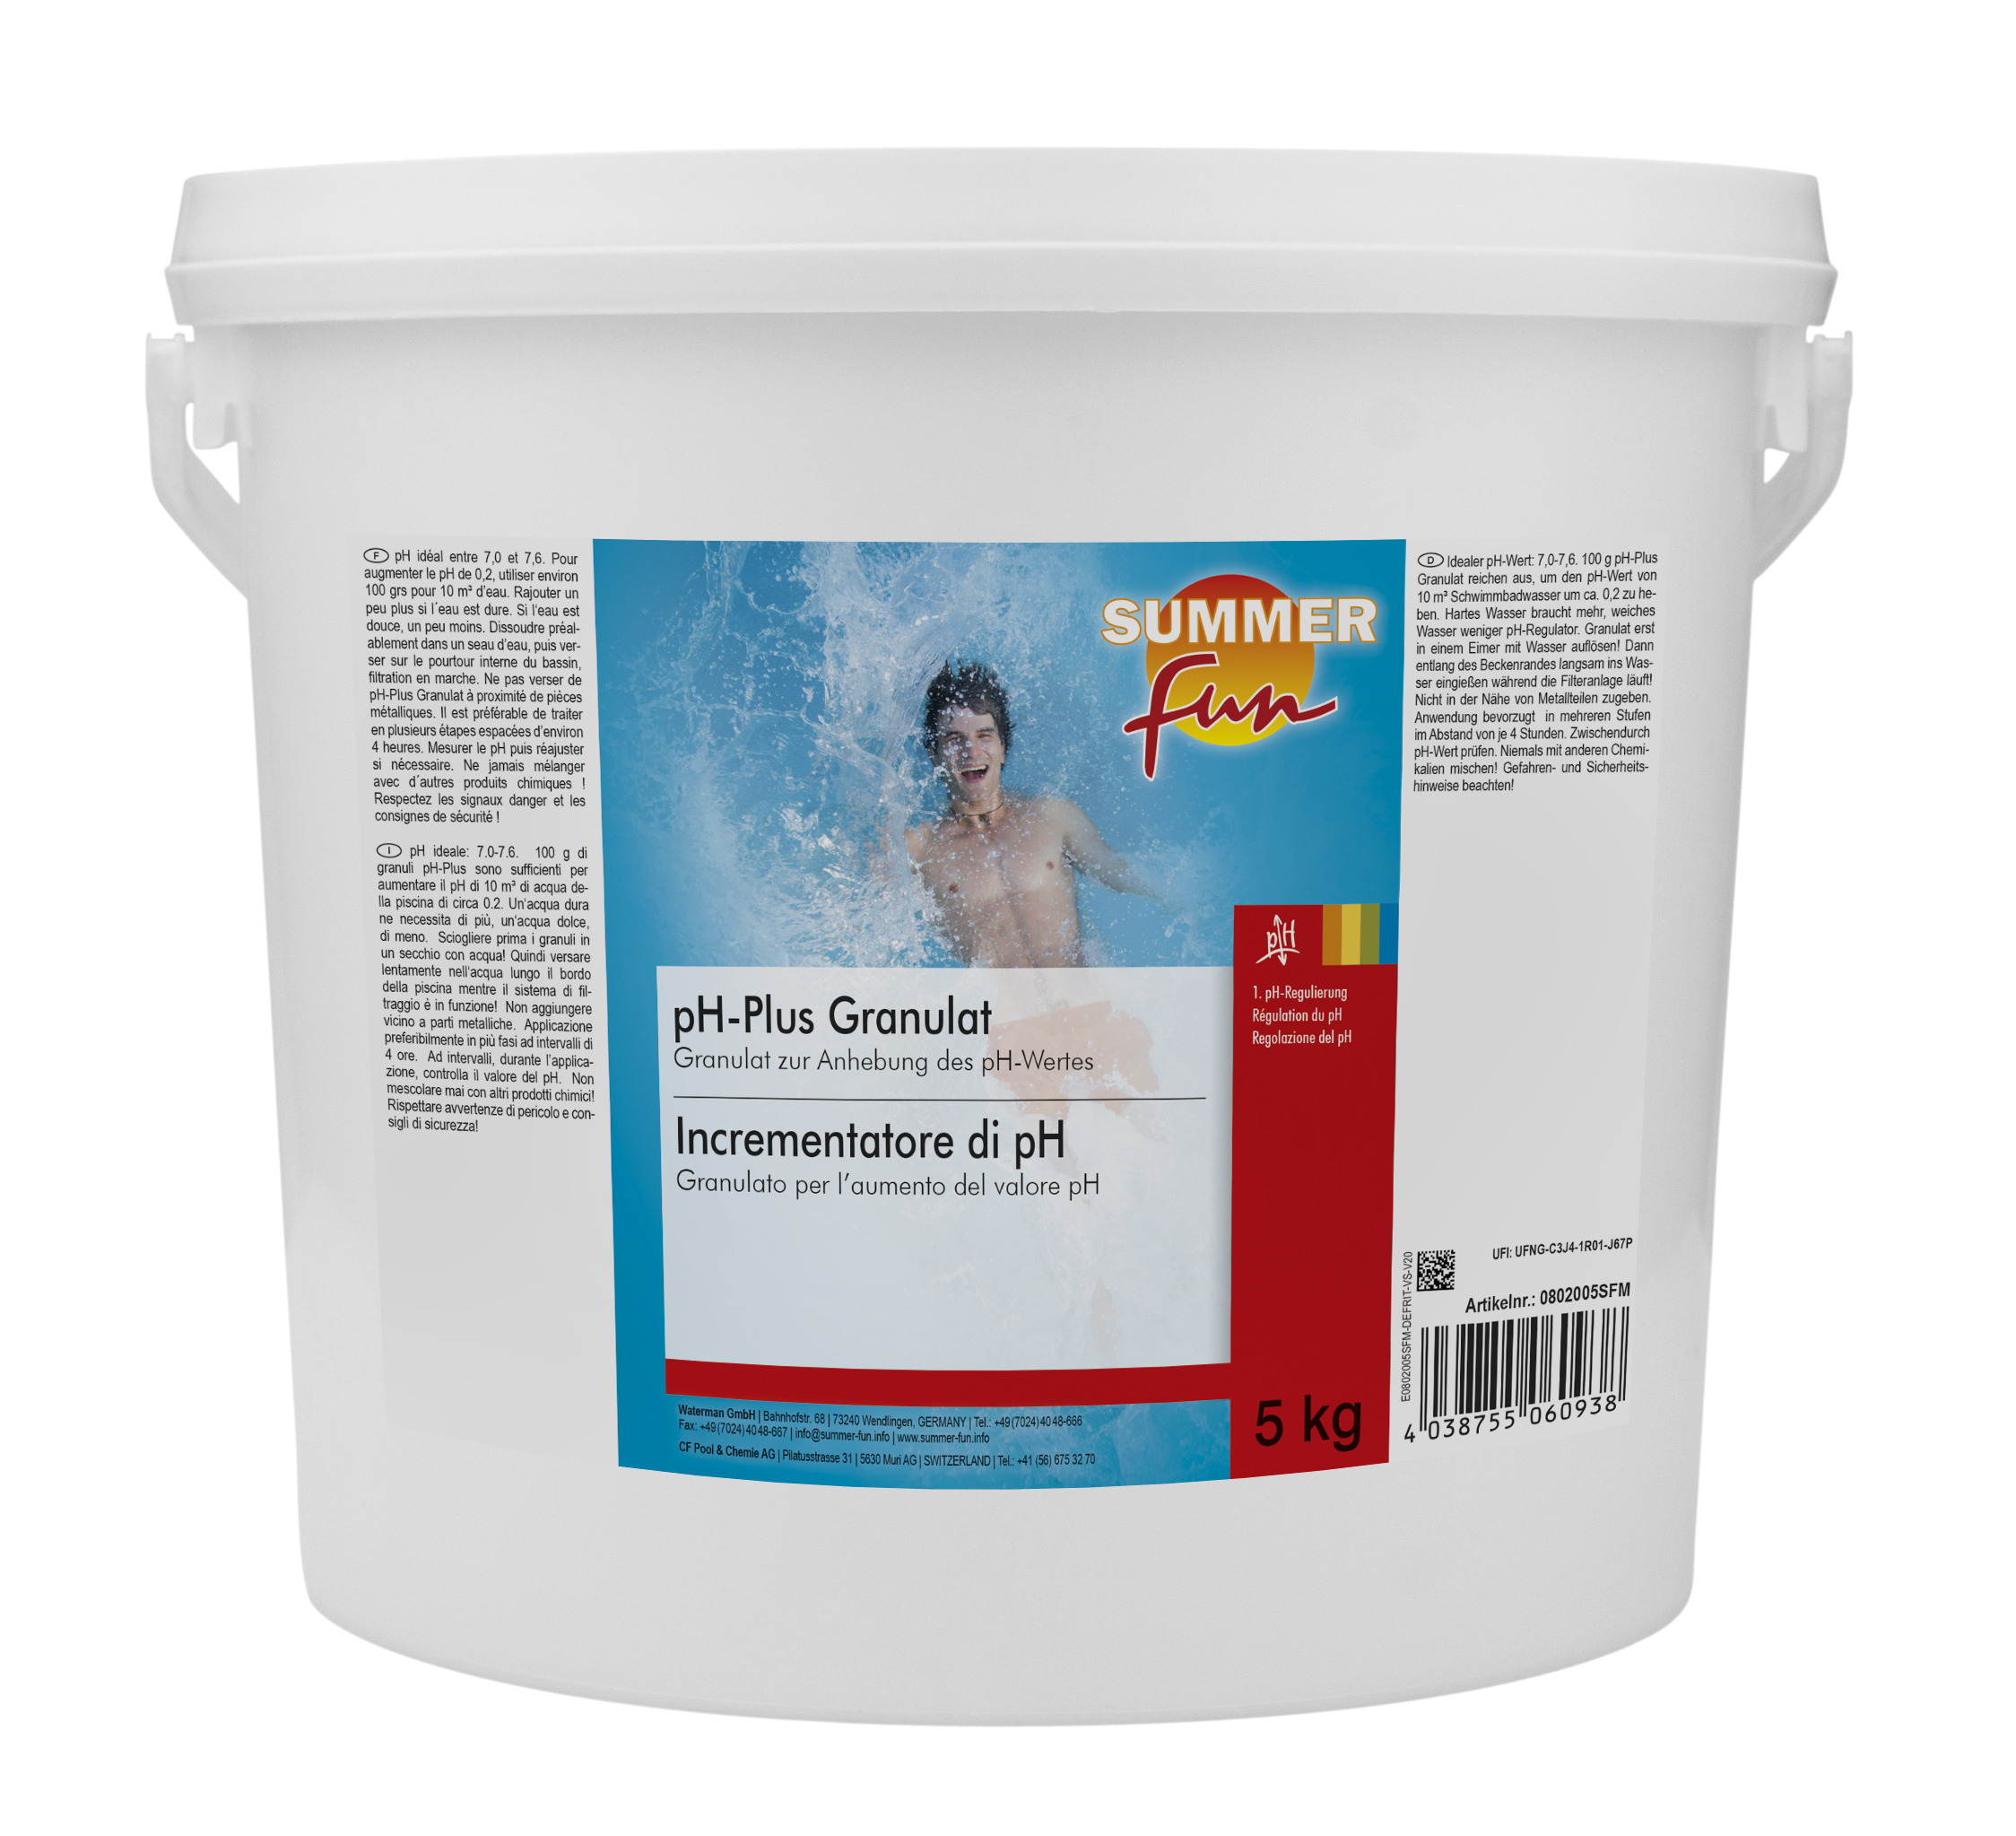 SummerFun pH - plus 5 kg